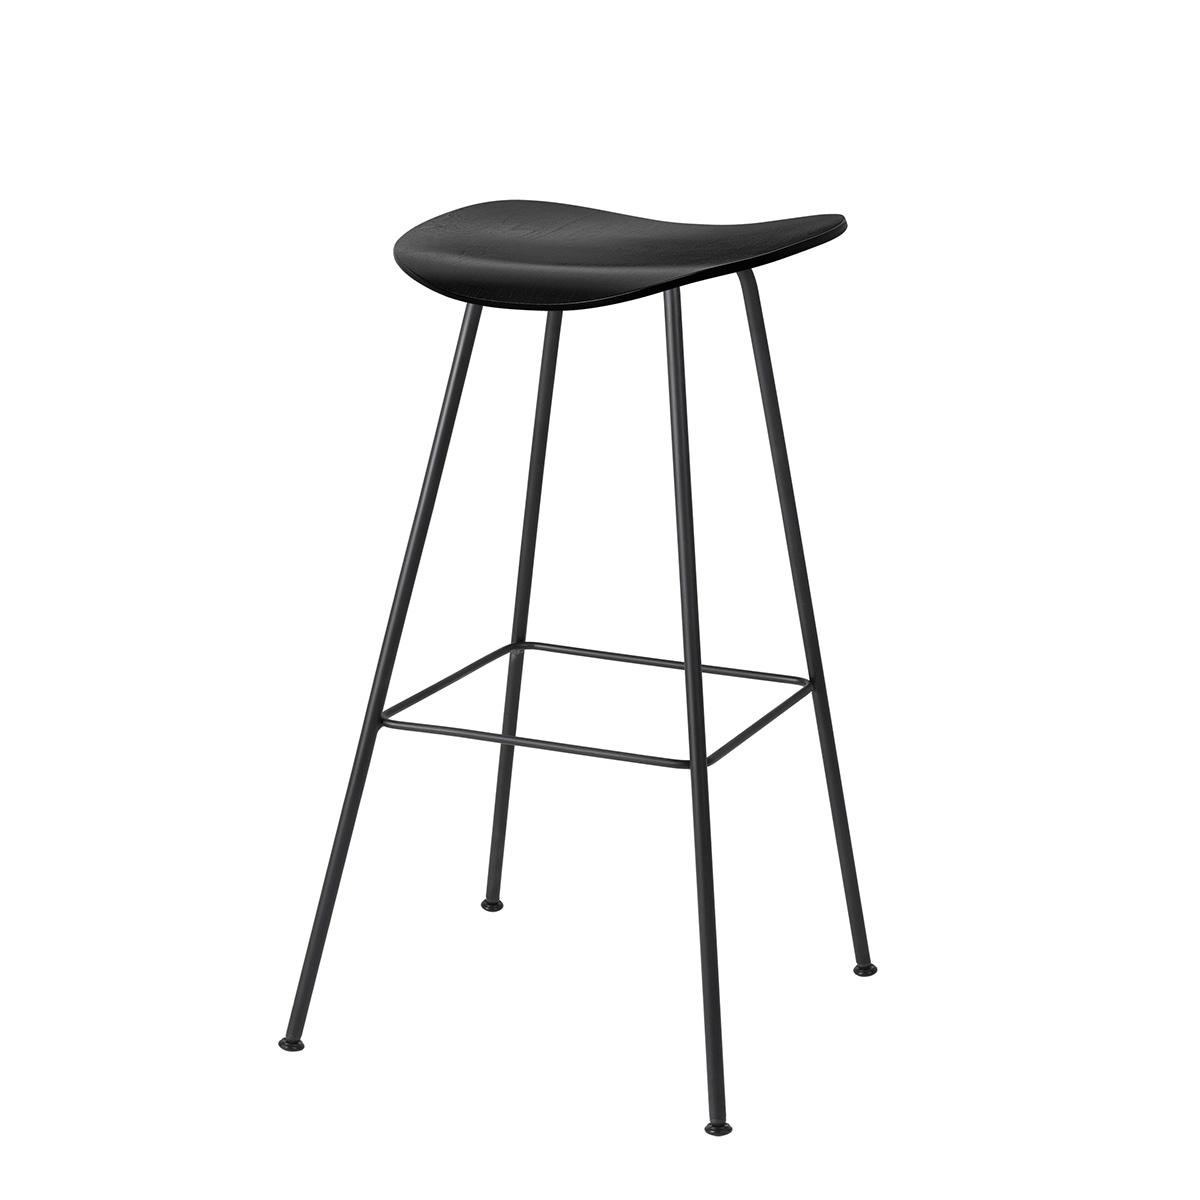 Groovy Gubi 2D Counter Stool Center Base Andrewgaddart Wooden Chair Designs For Living Room Andrewgaddartcom